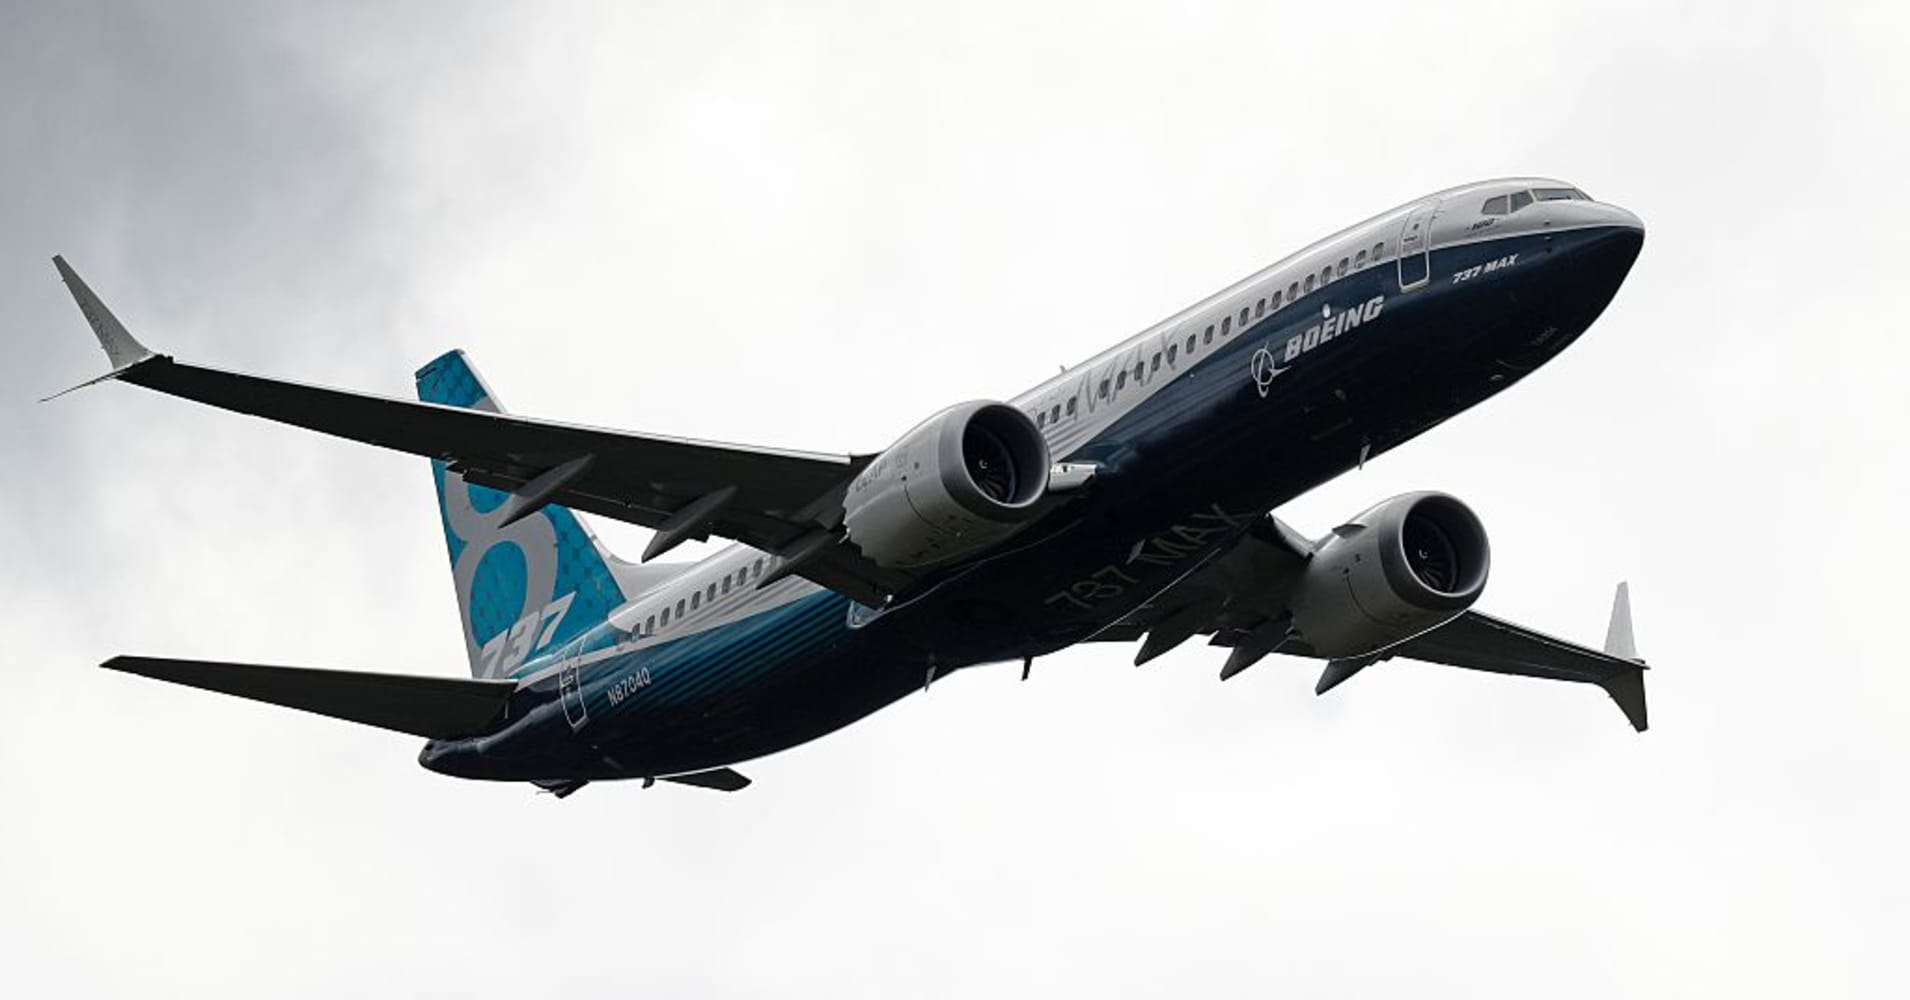 https://i1.wp.com/fm.cnbc.com/applications/cnbc.com/resources/img/editorial/2016/07/14/103788159-Boeing_737.1910x1000.jpg